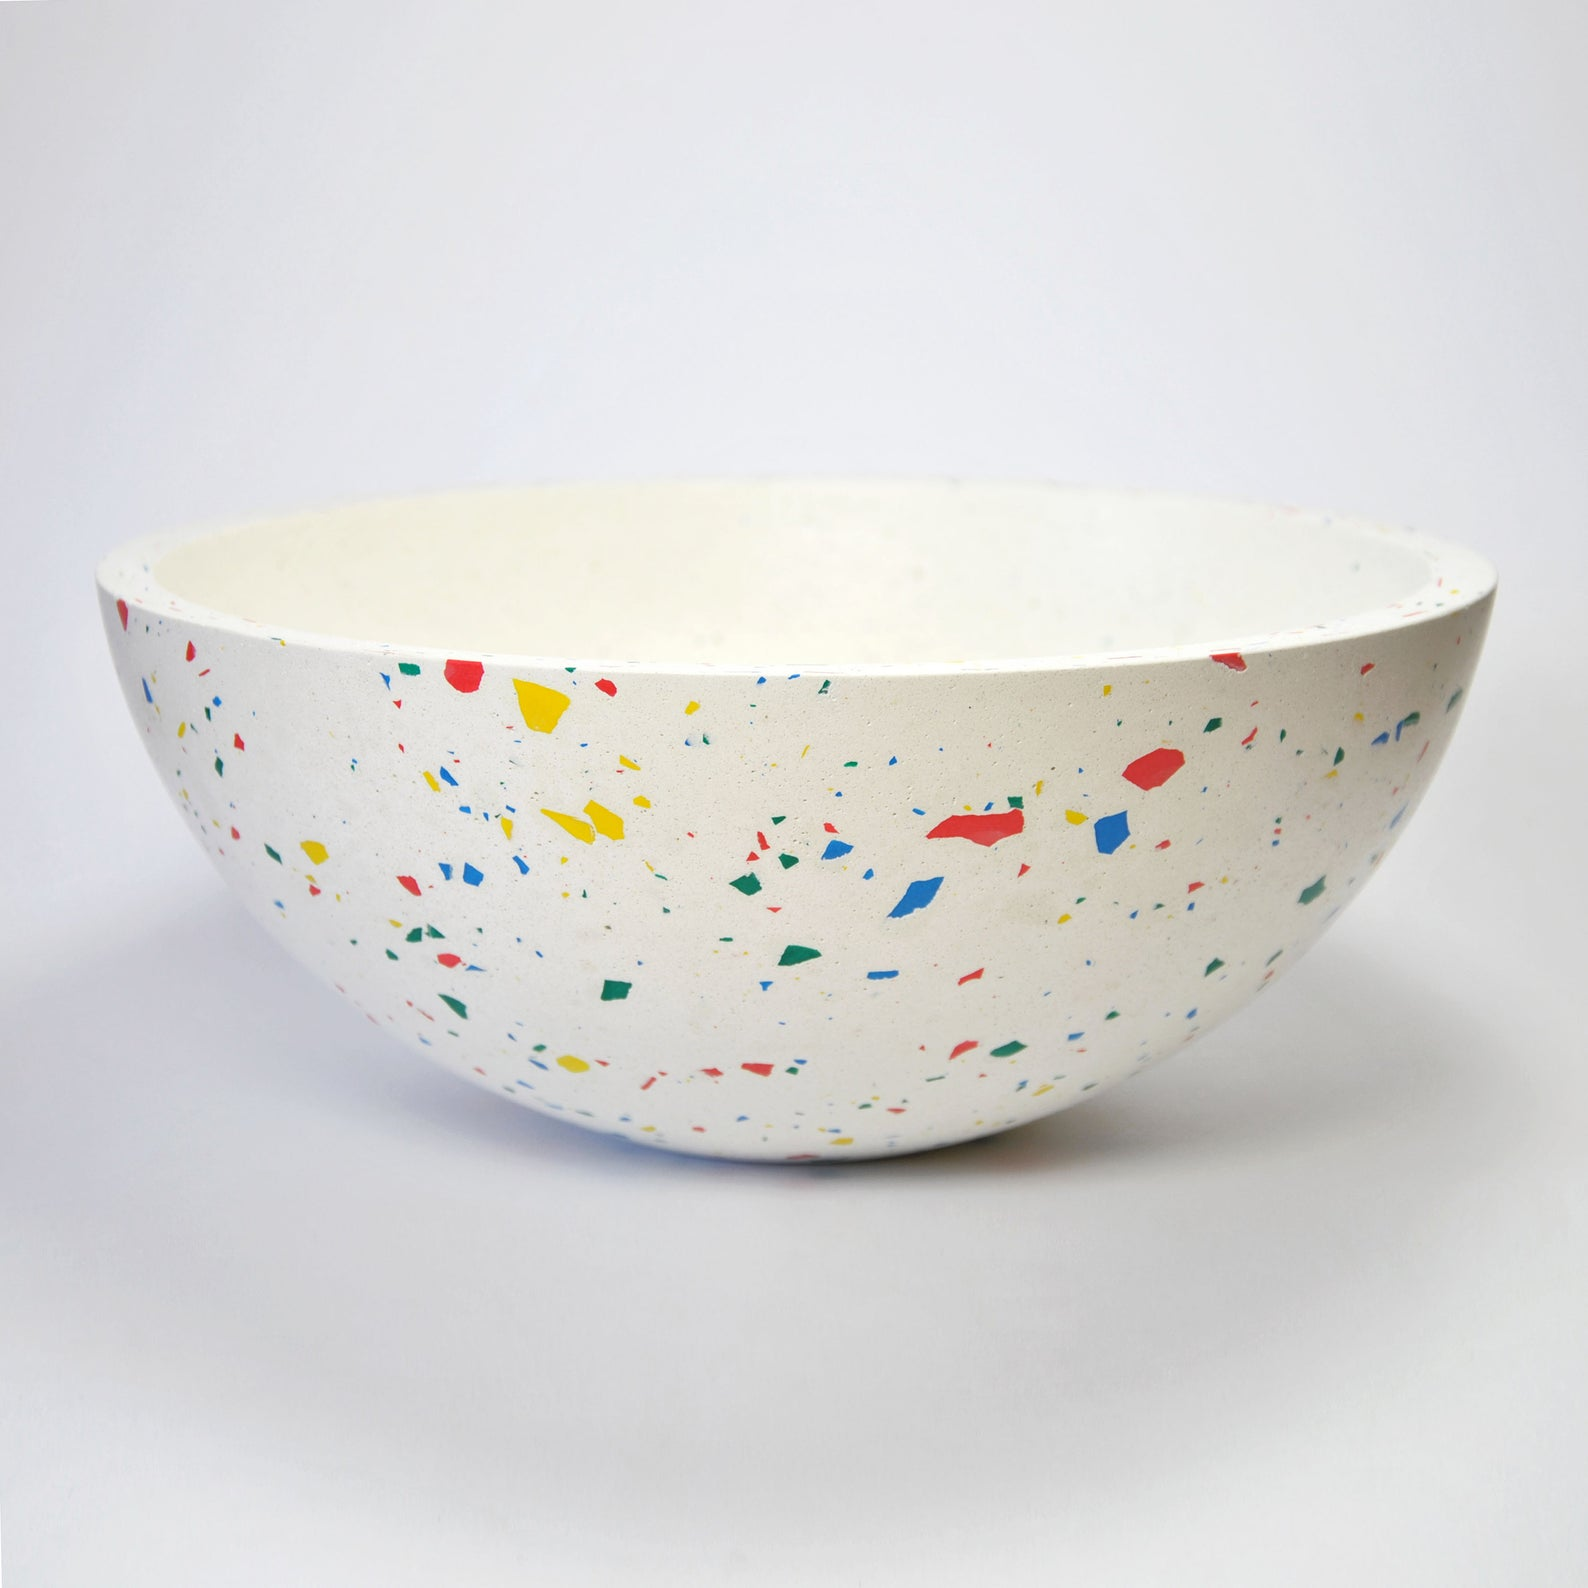 Vibrant terrazzo fruit bowl from Etsy shop Mica Rica